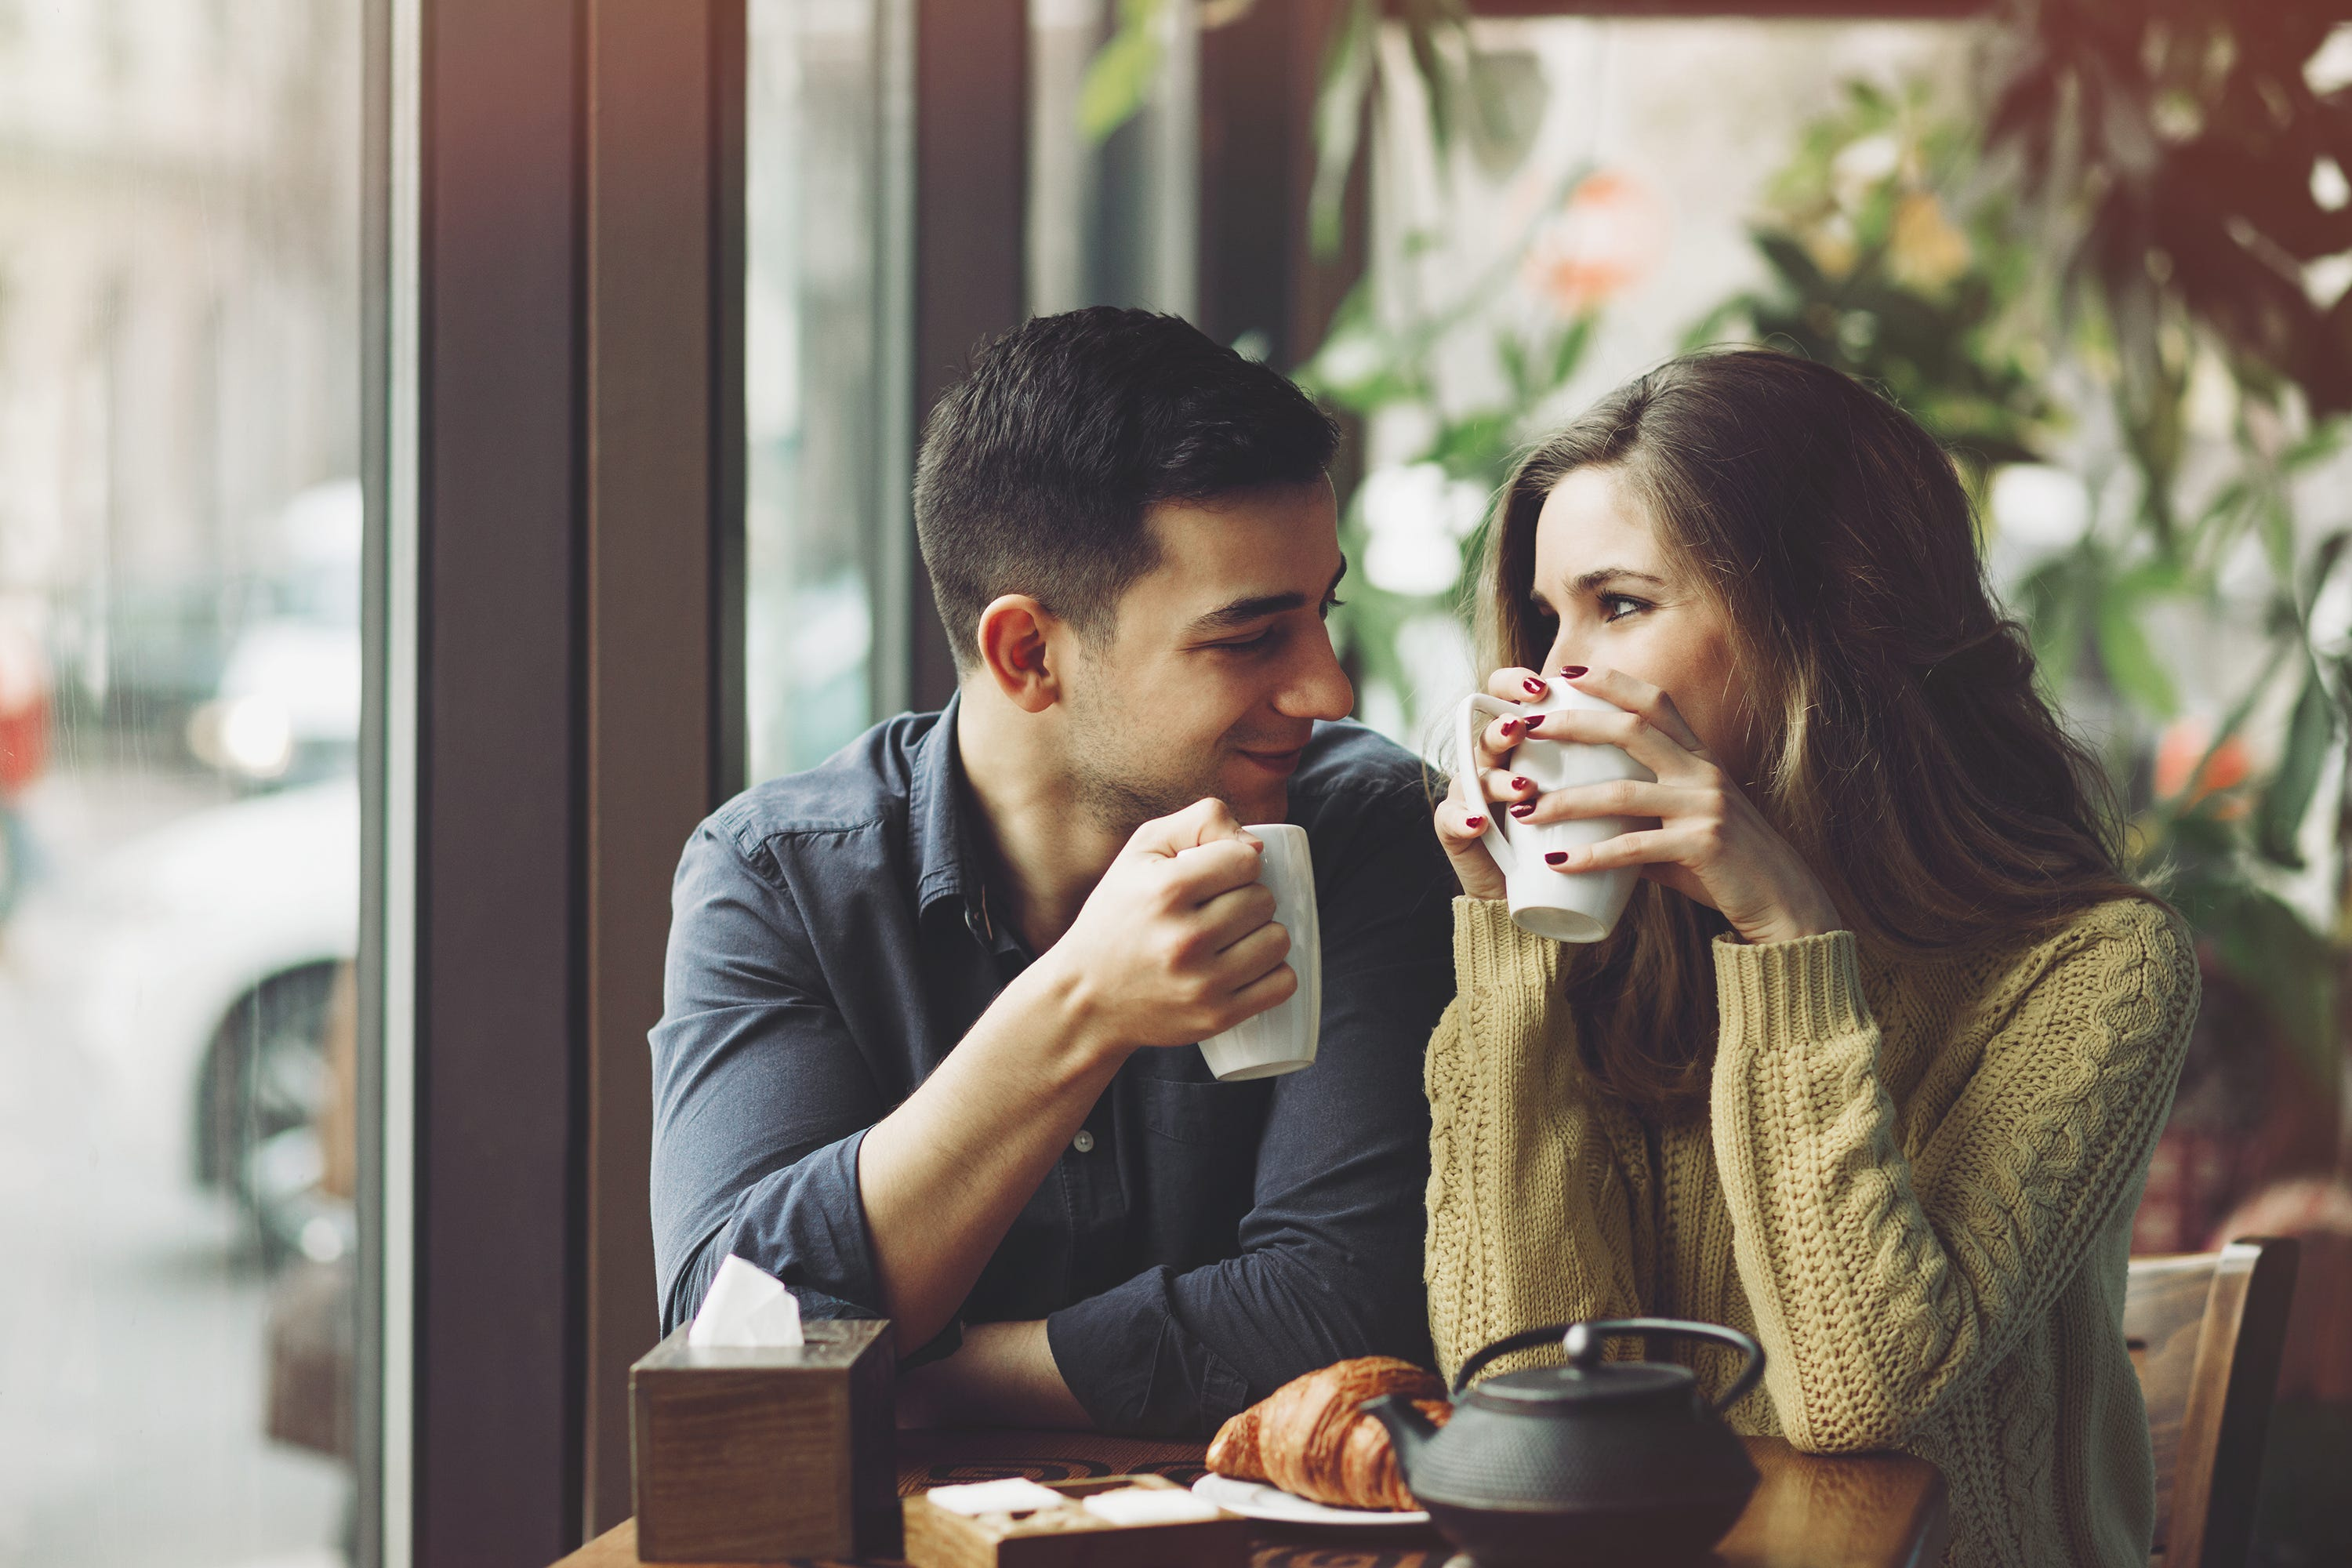 Online hookup kissing on first date